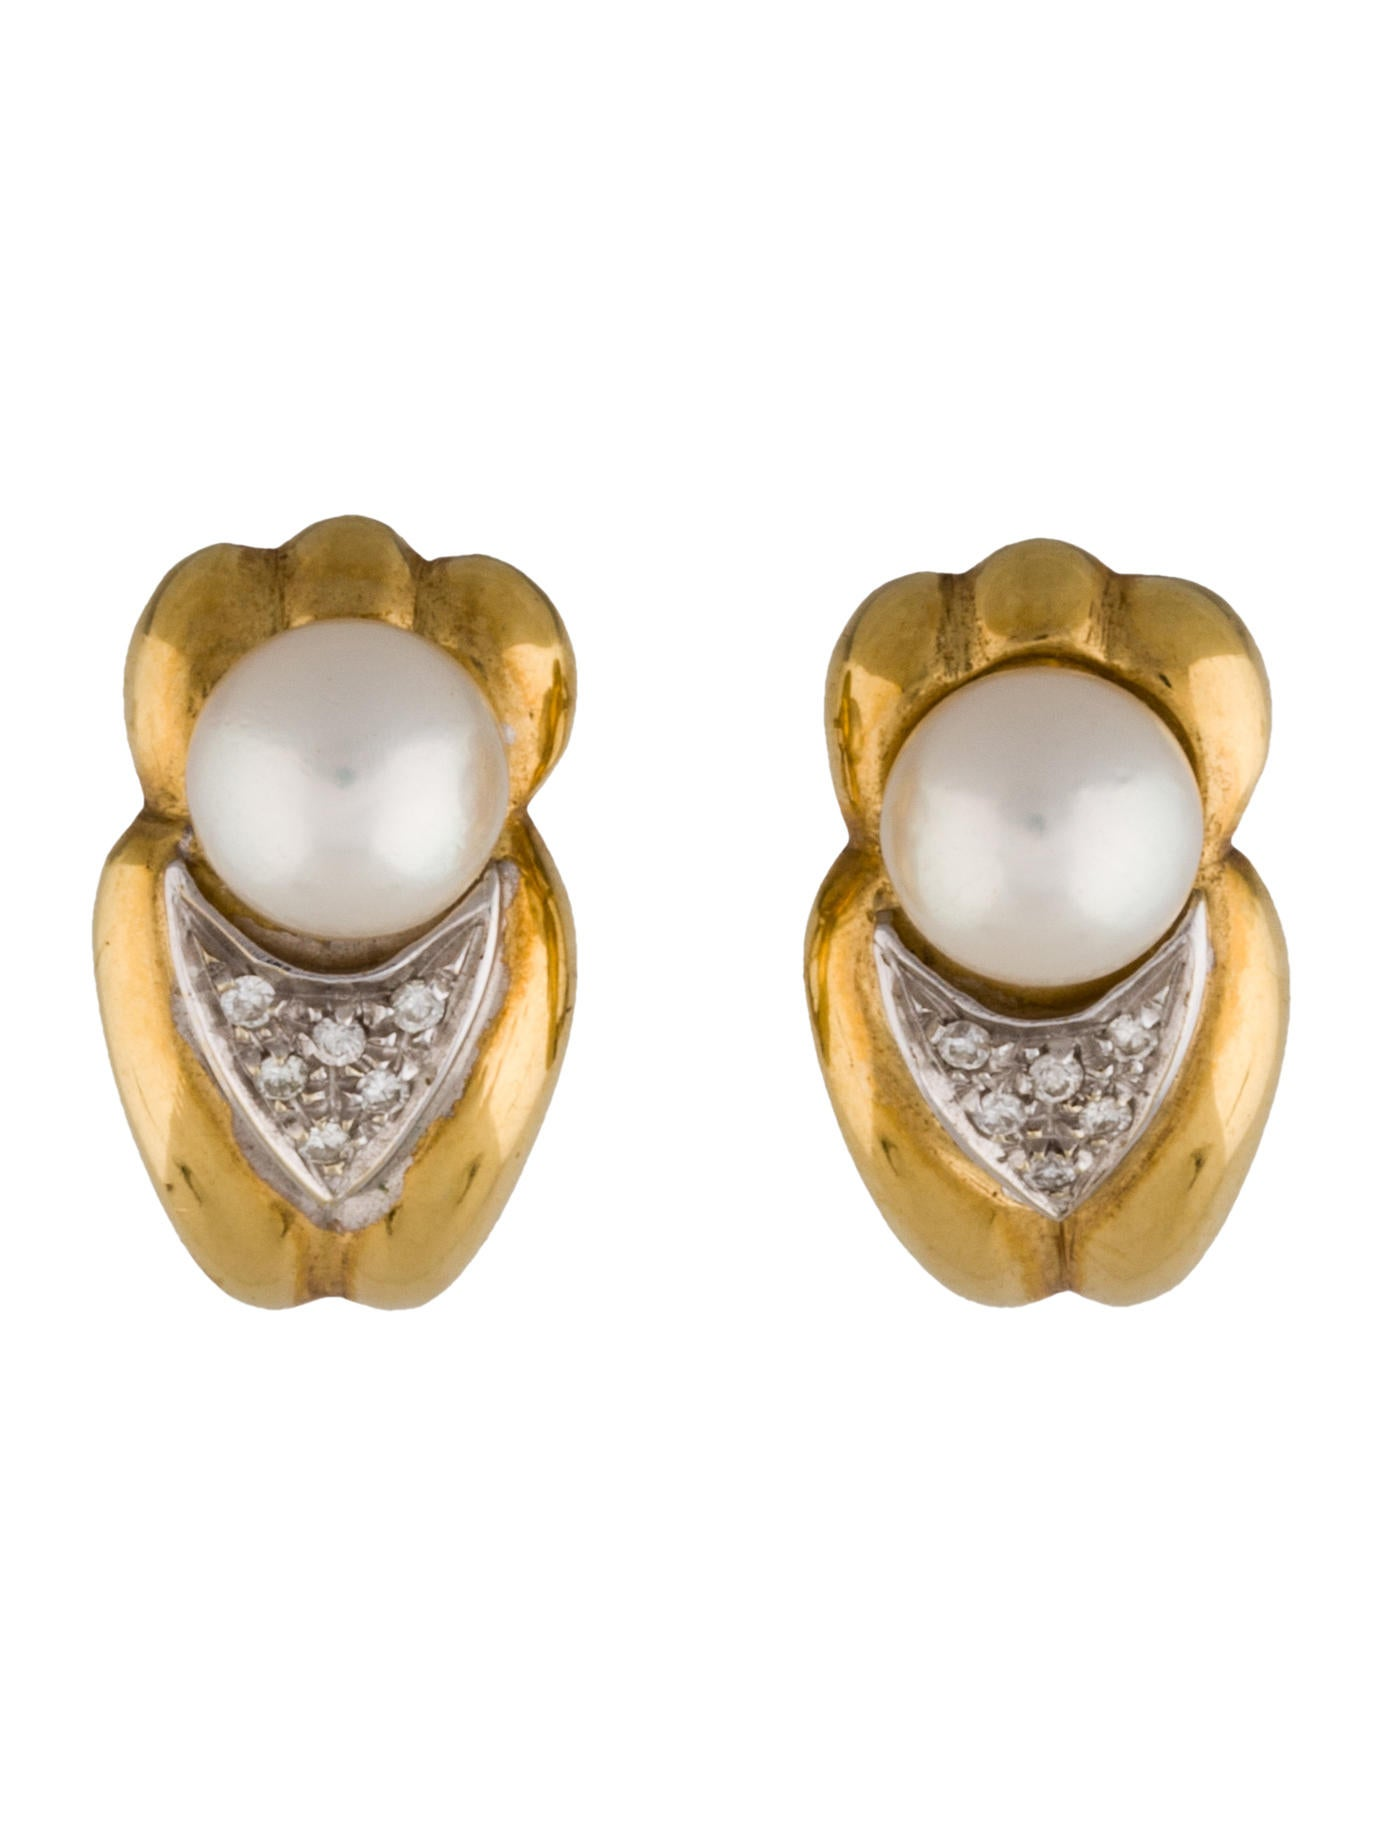 pearl and diamond clip on earrings earrings fje26466. Black Bedroom Furniture Sets. Home Design Ideas